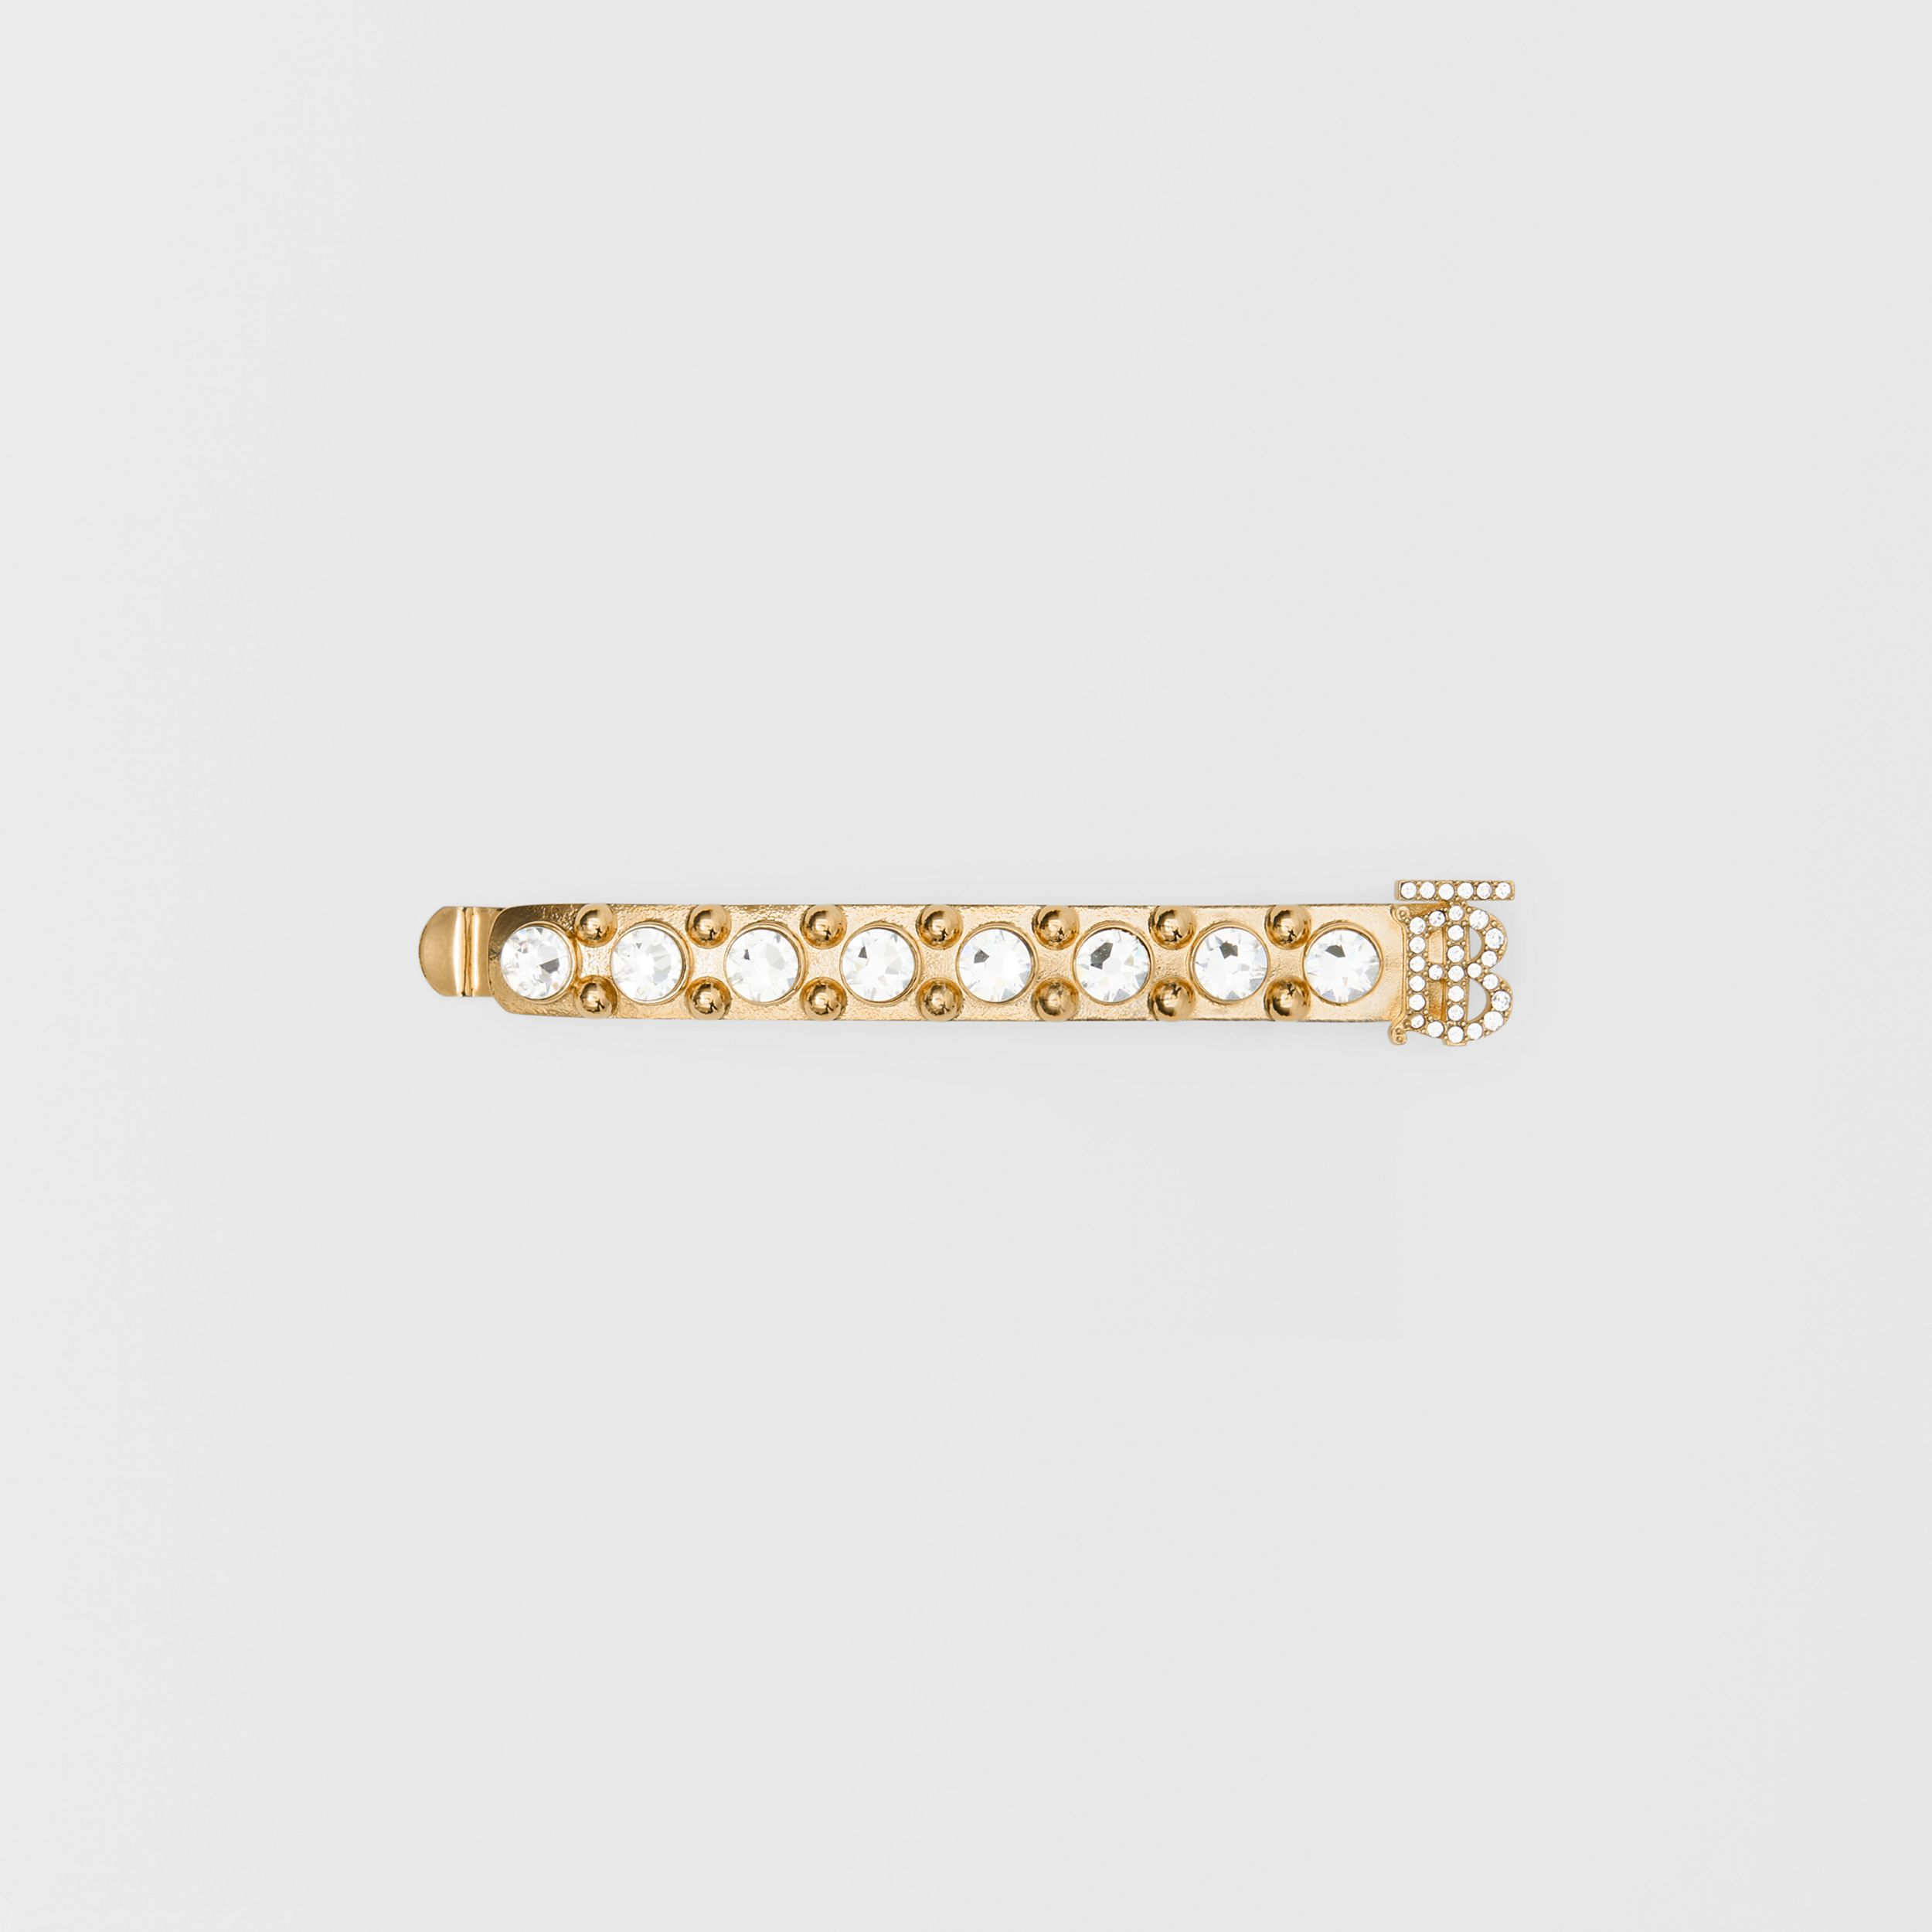 Crystal Monogram Motif Gold-plated Barrette in Light | Burberry - 1